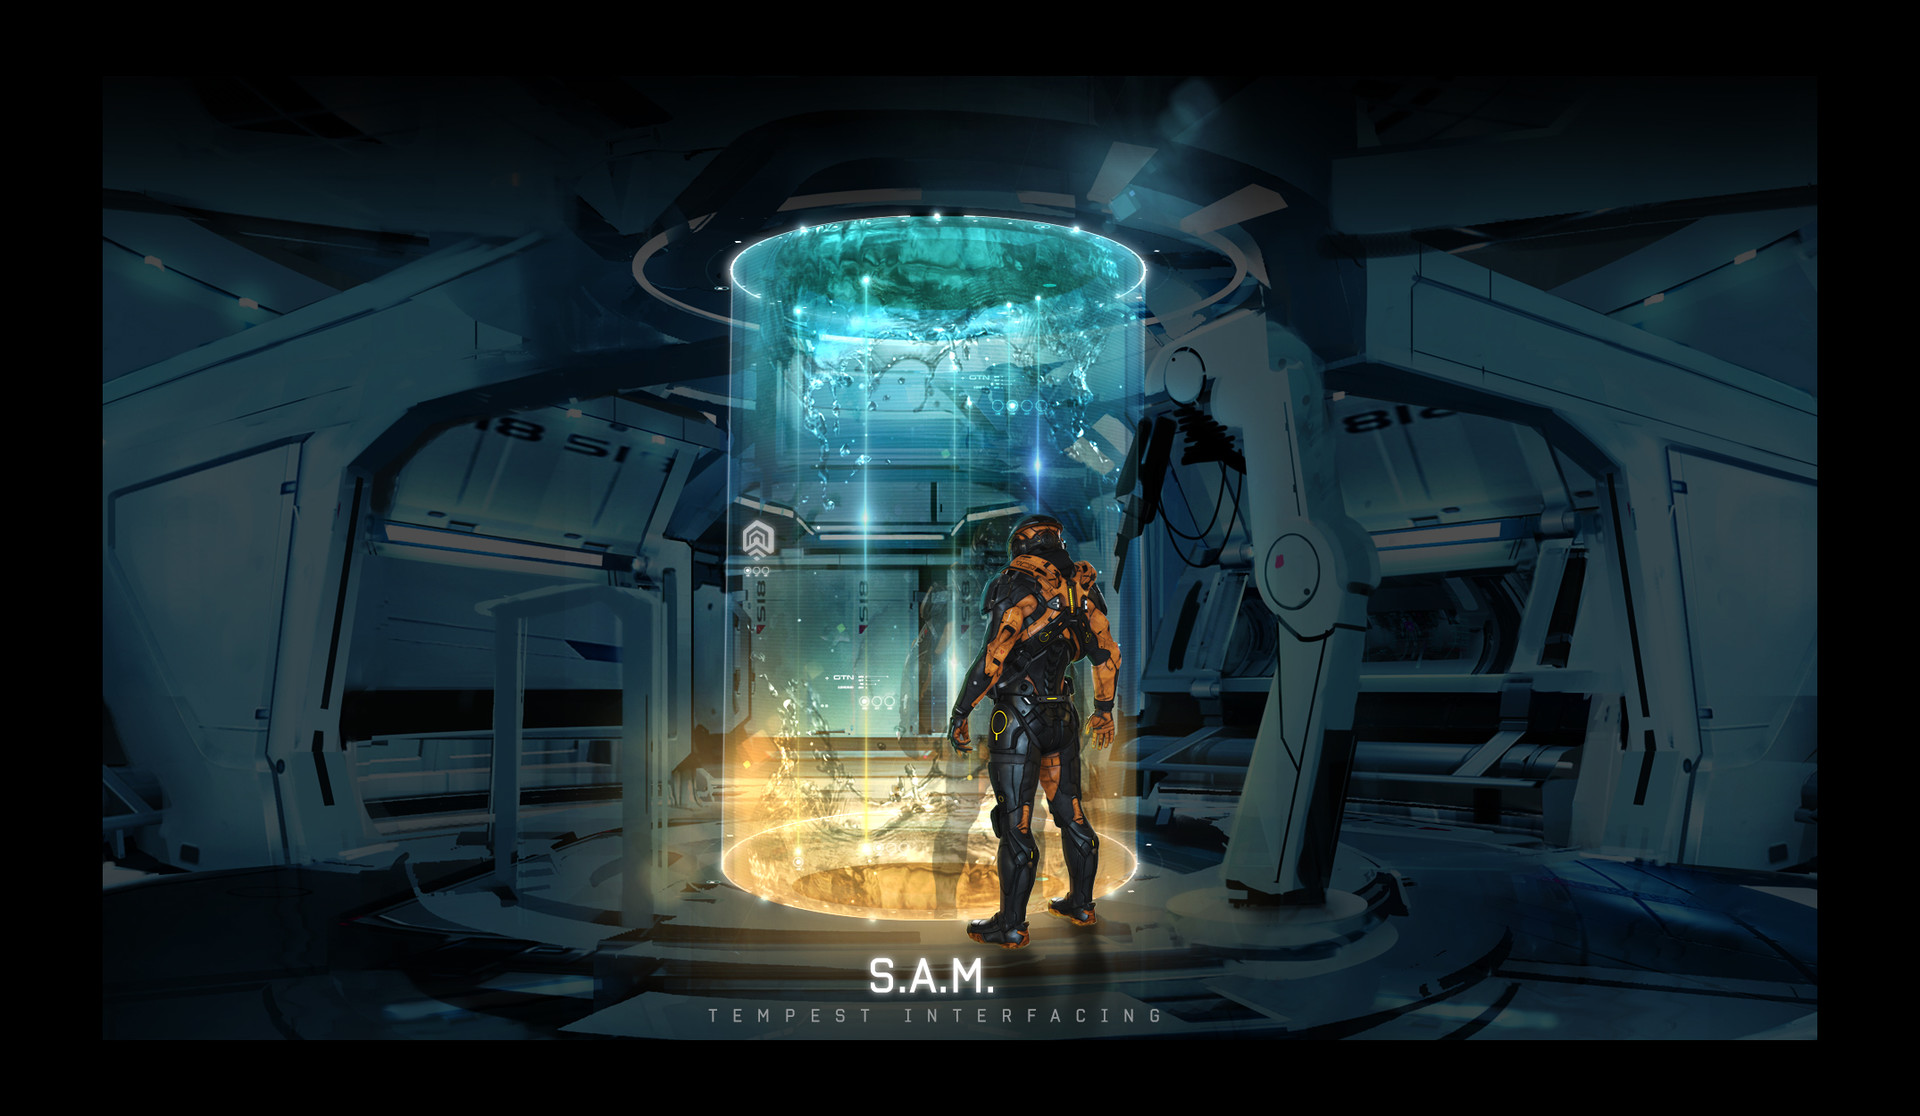 Mass Effect Andromeda Concept Art - UI Art by Eric Bellefeuille